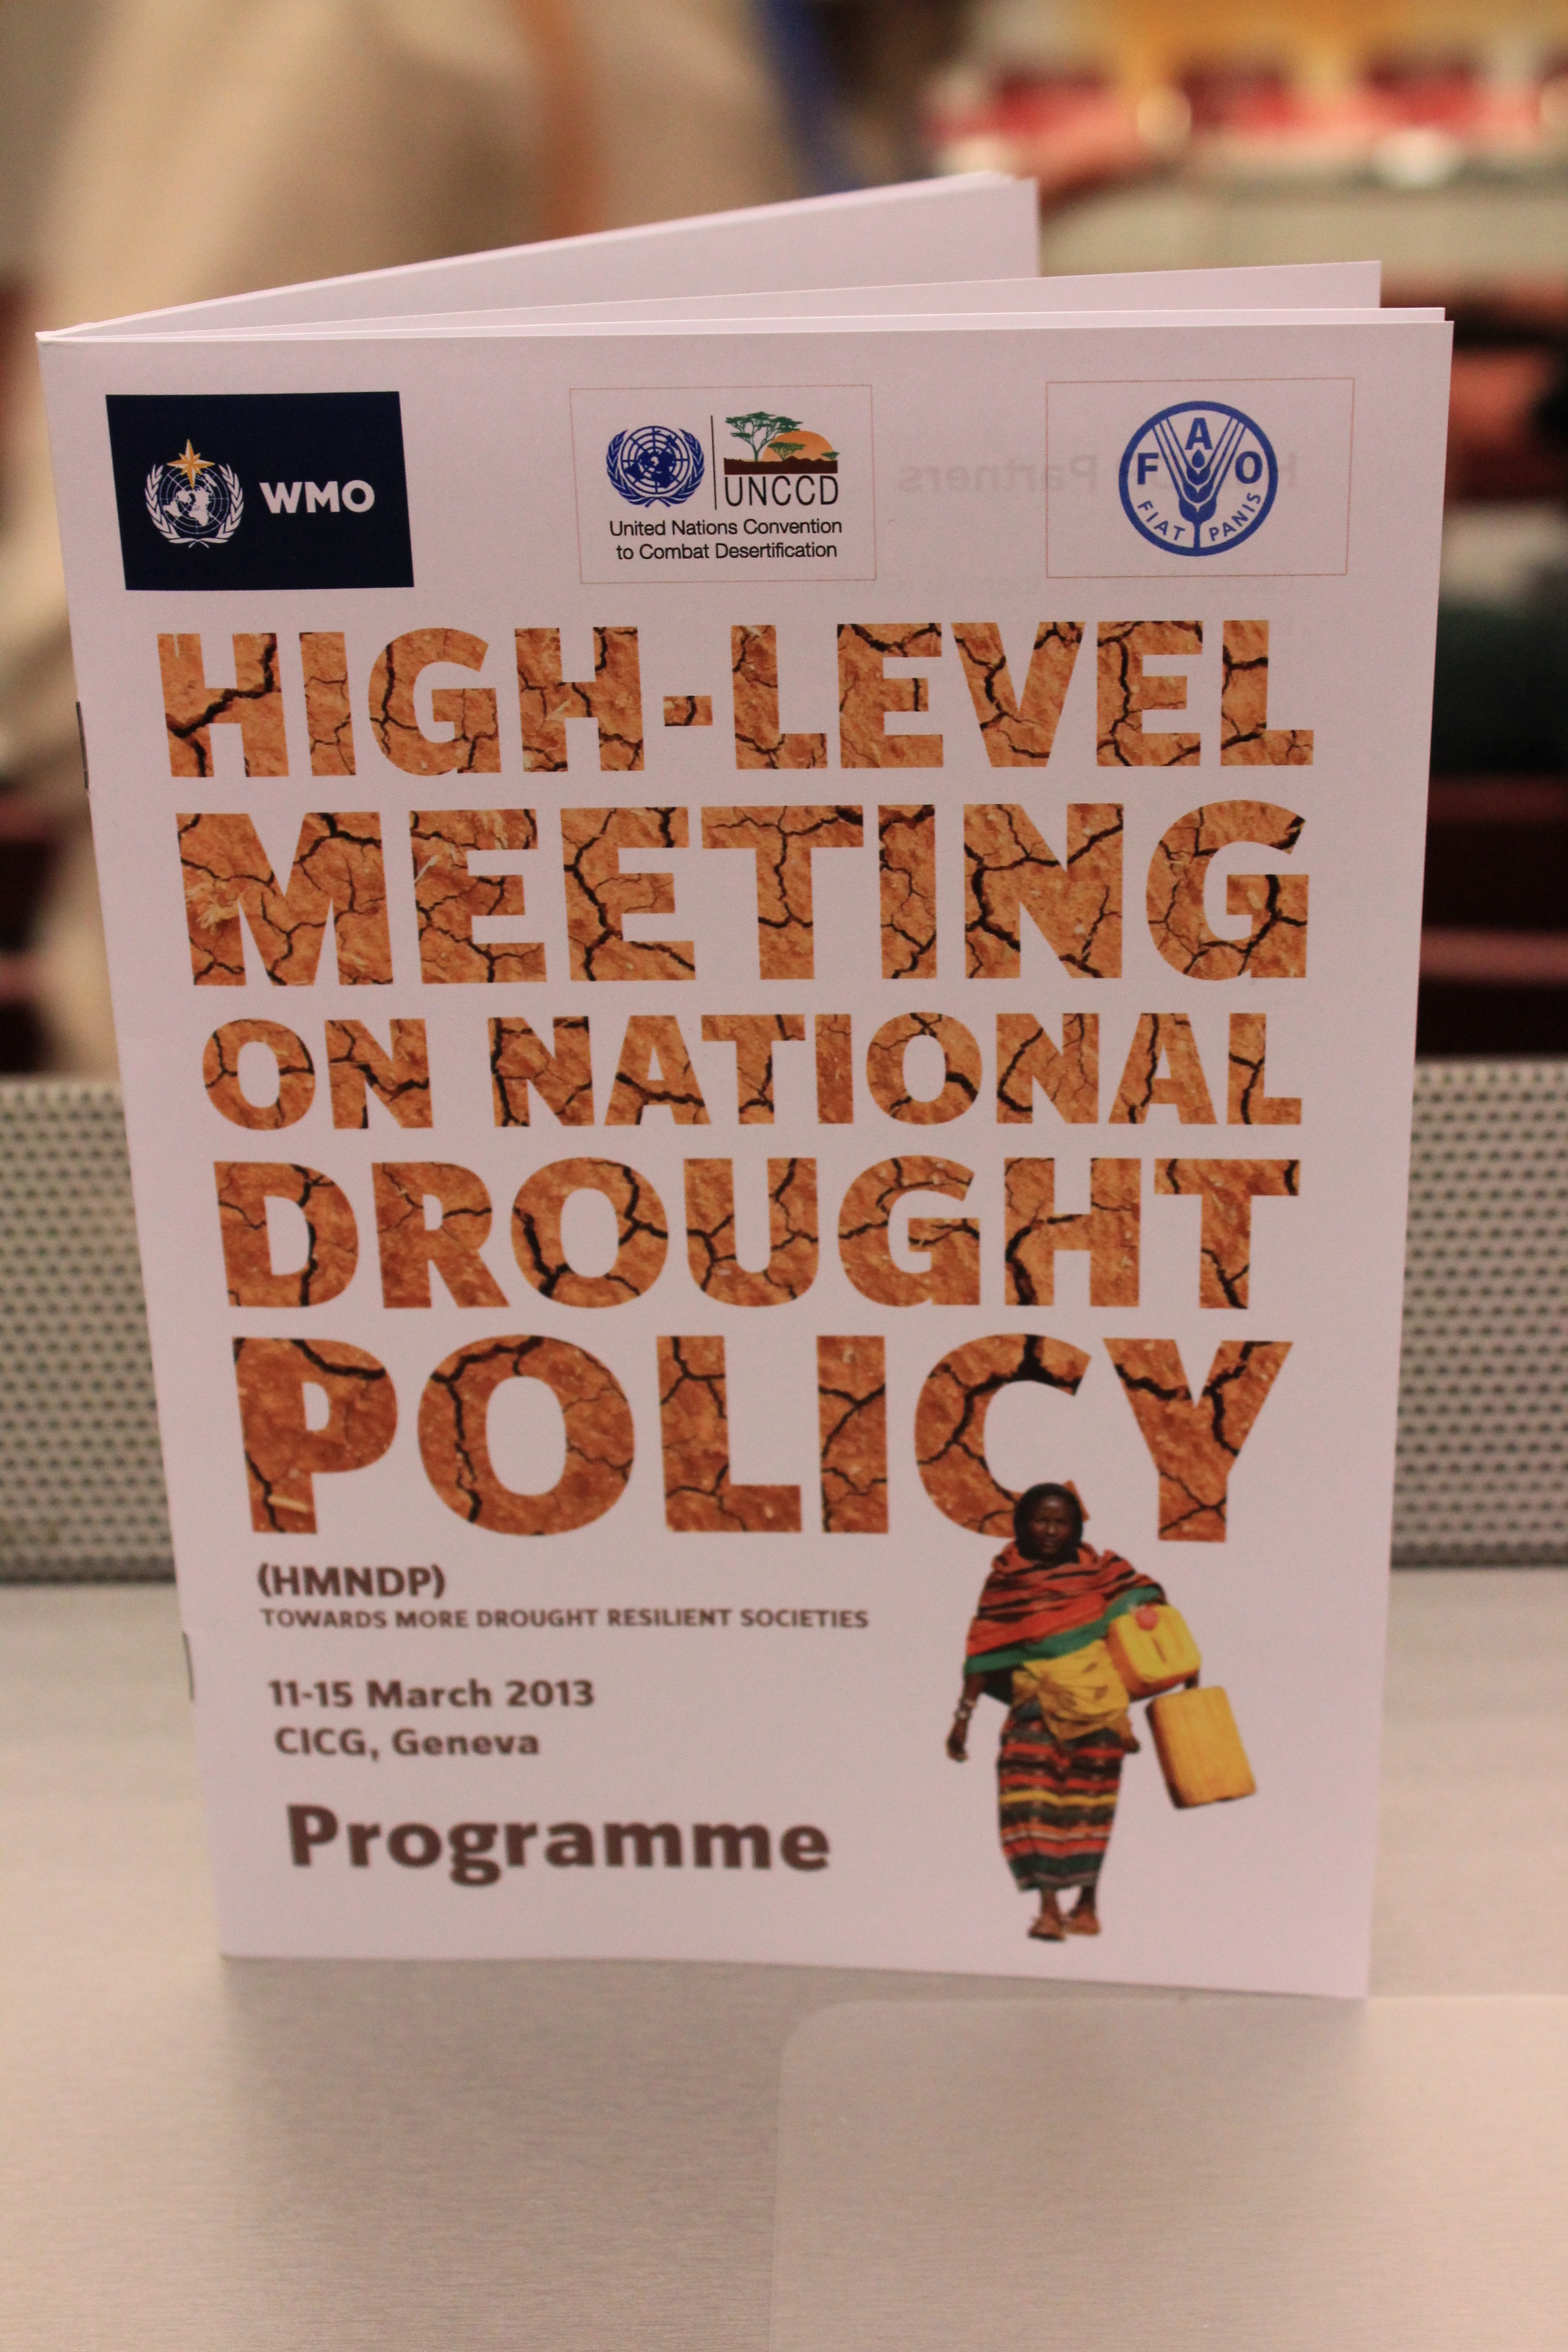 The High Level Meeting on National Drought Policy, March 11-15, included several presentations by School of Natural Resources faculty and staff